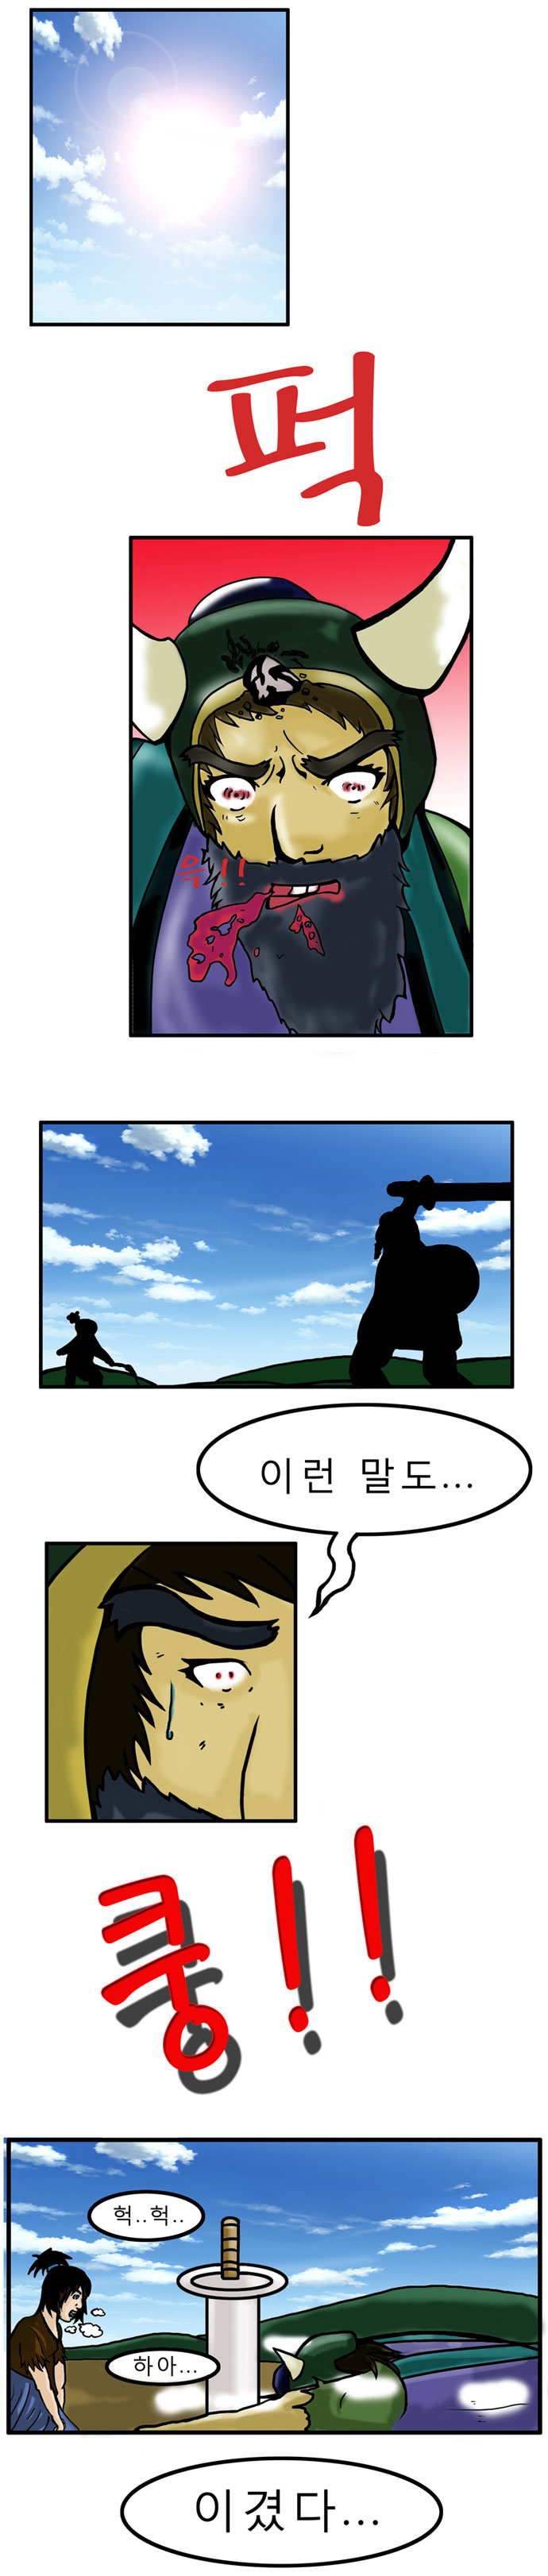 uks_data_webtoon_david3_19 - 복사본.jpg